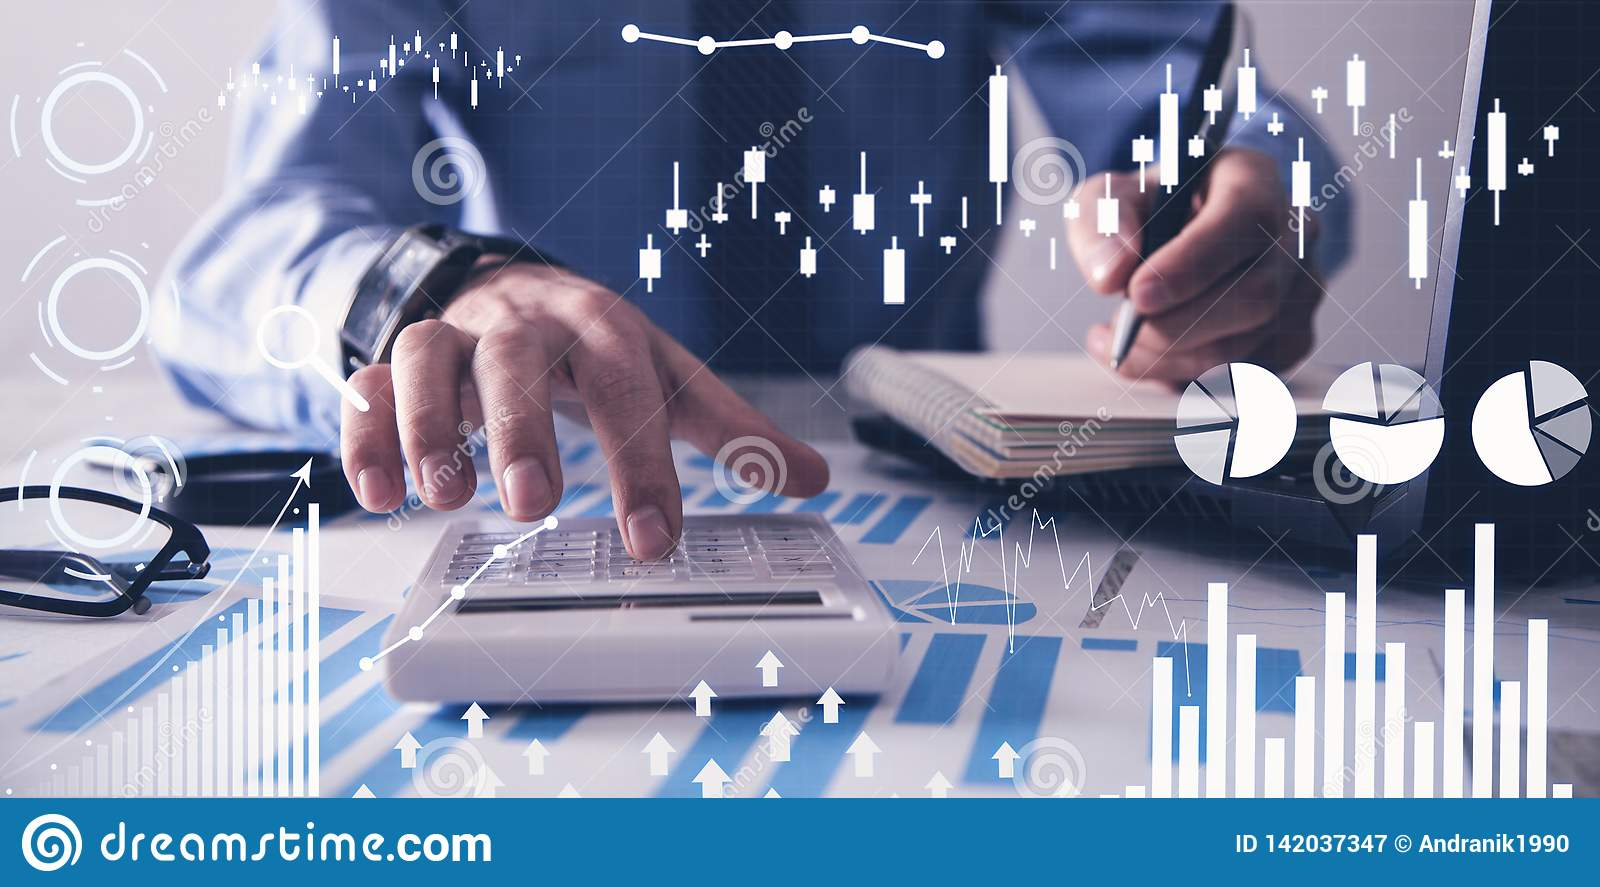 Man working in office. Financial growth graphs. Sales increase